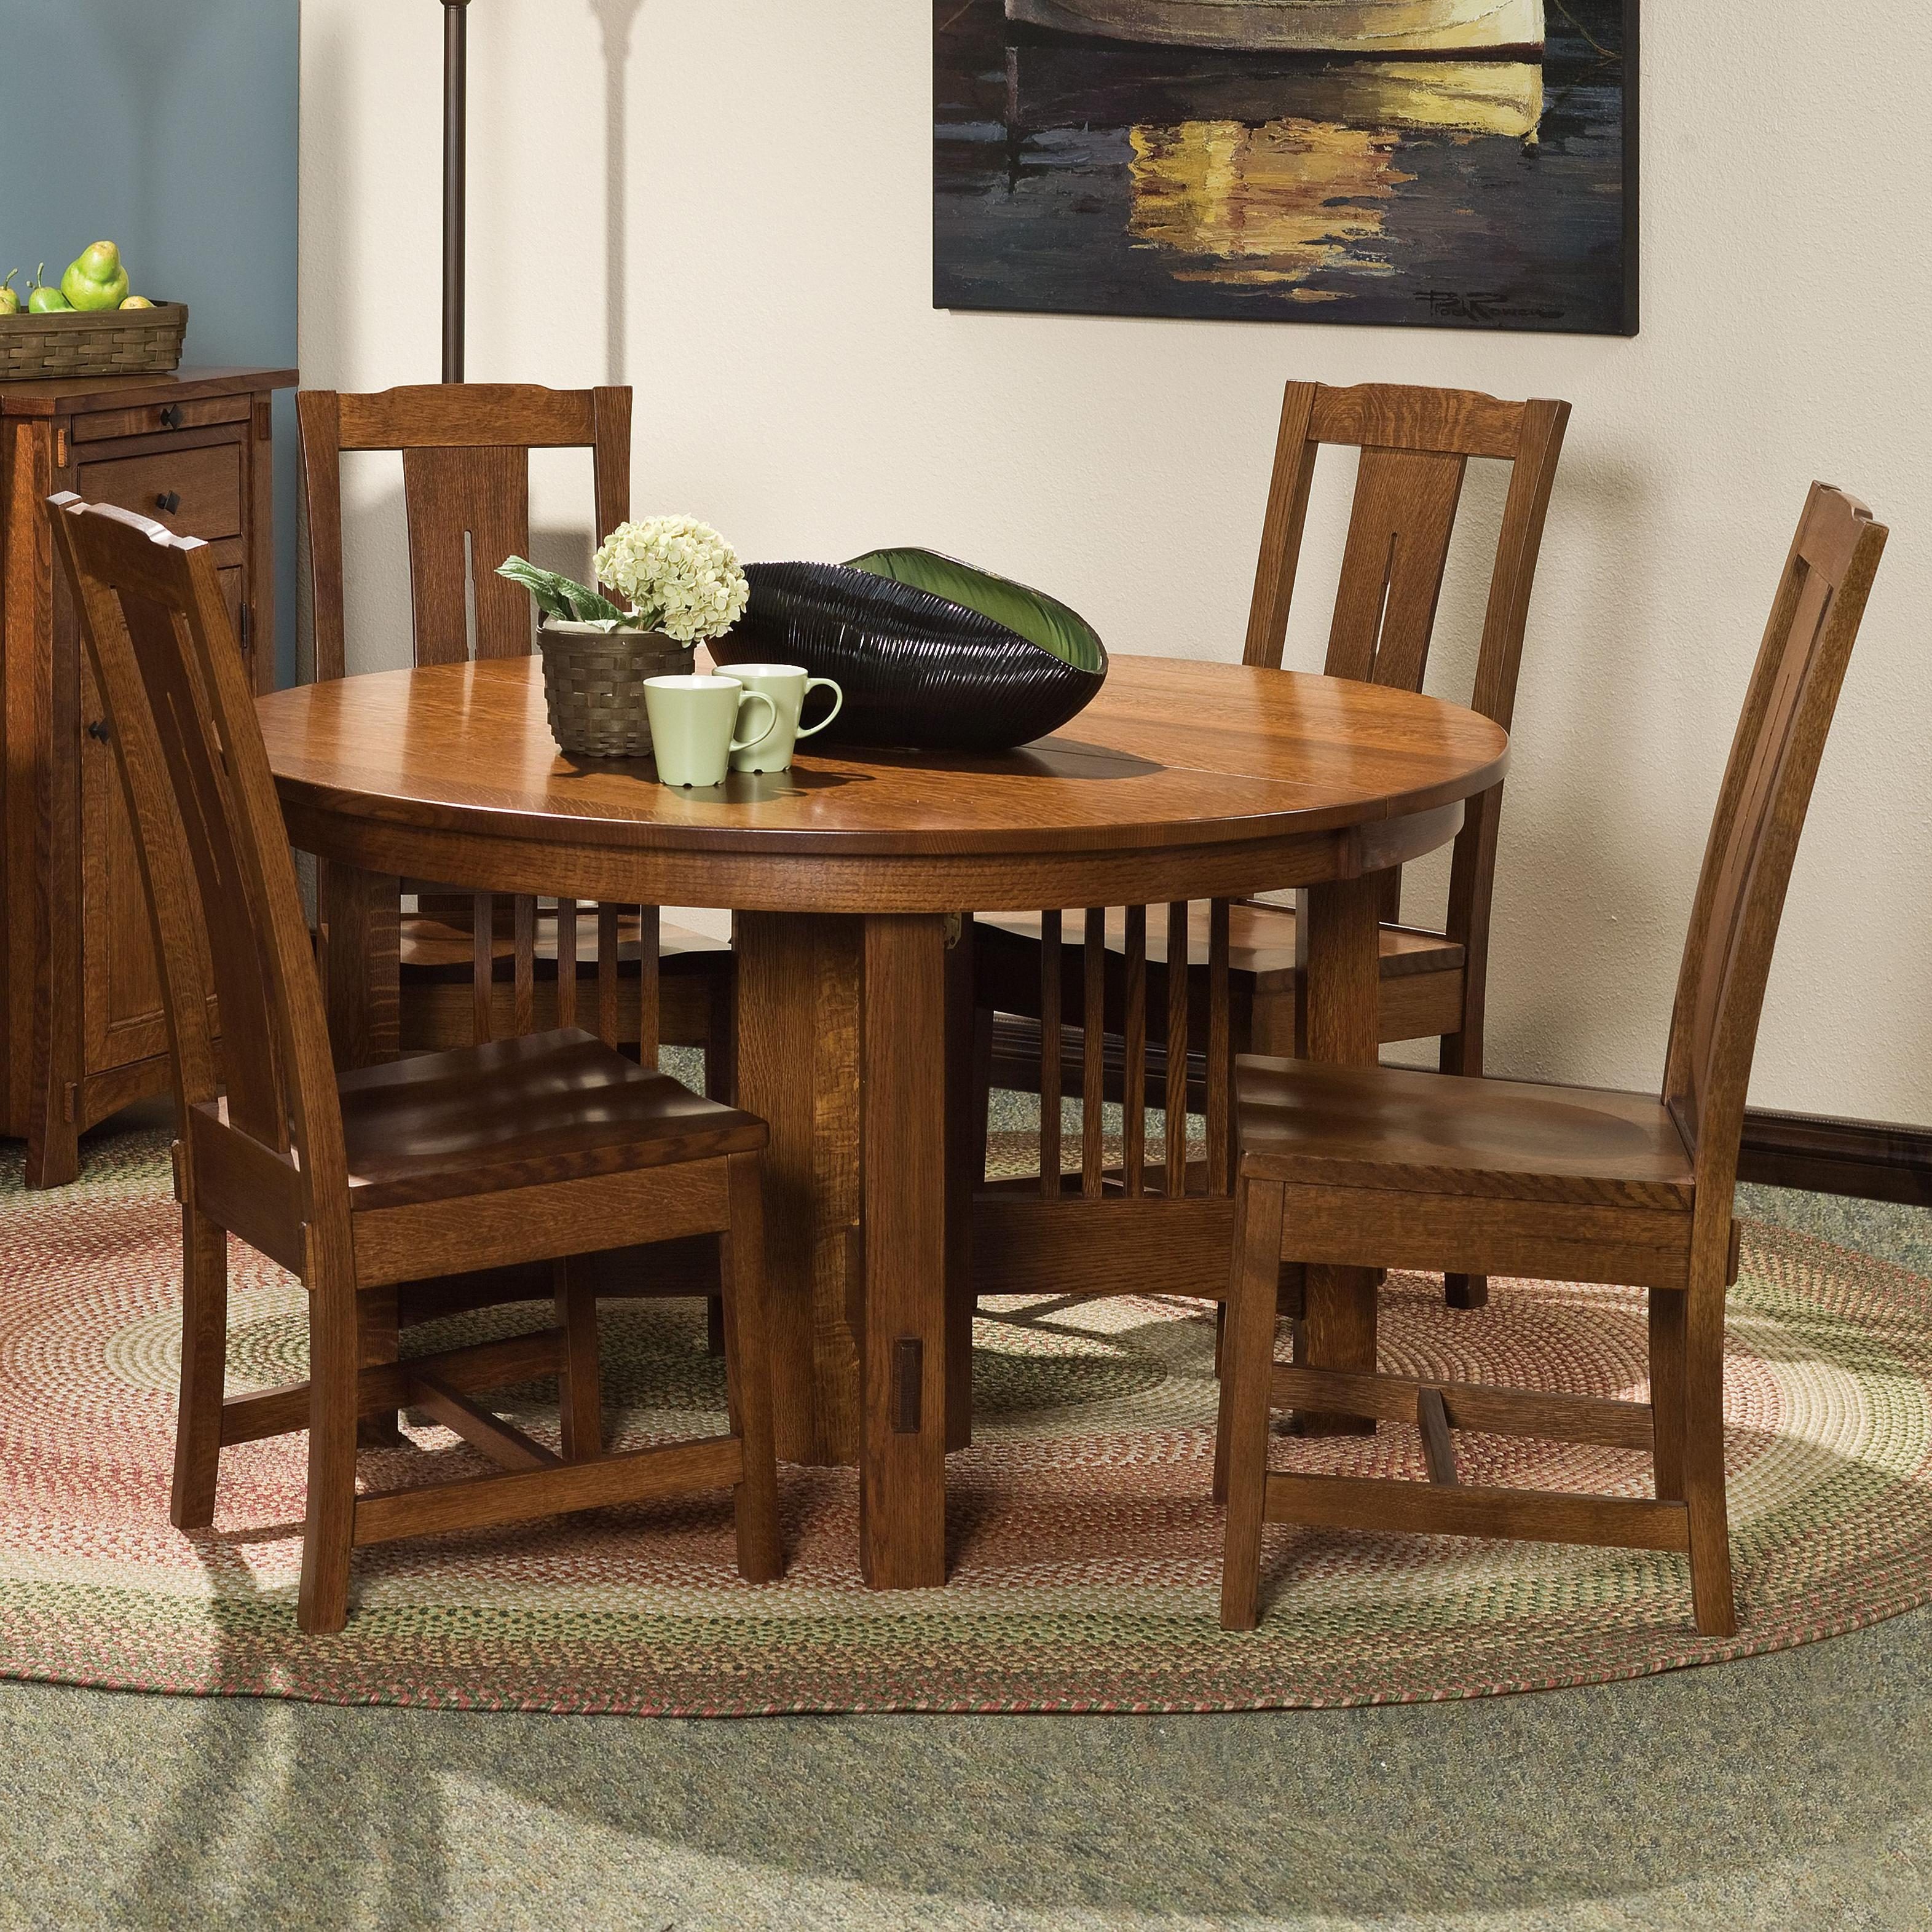 """Heartland 5 pc. 54"""" Table and Chairs Set by Amish Impressions by Fusion Designs at Mueller Furniture"""